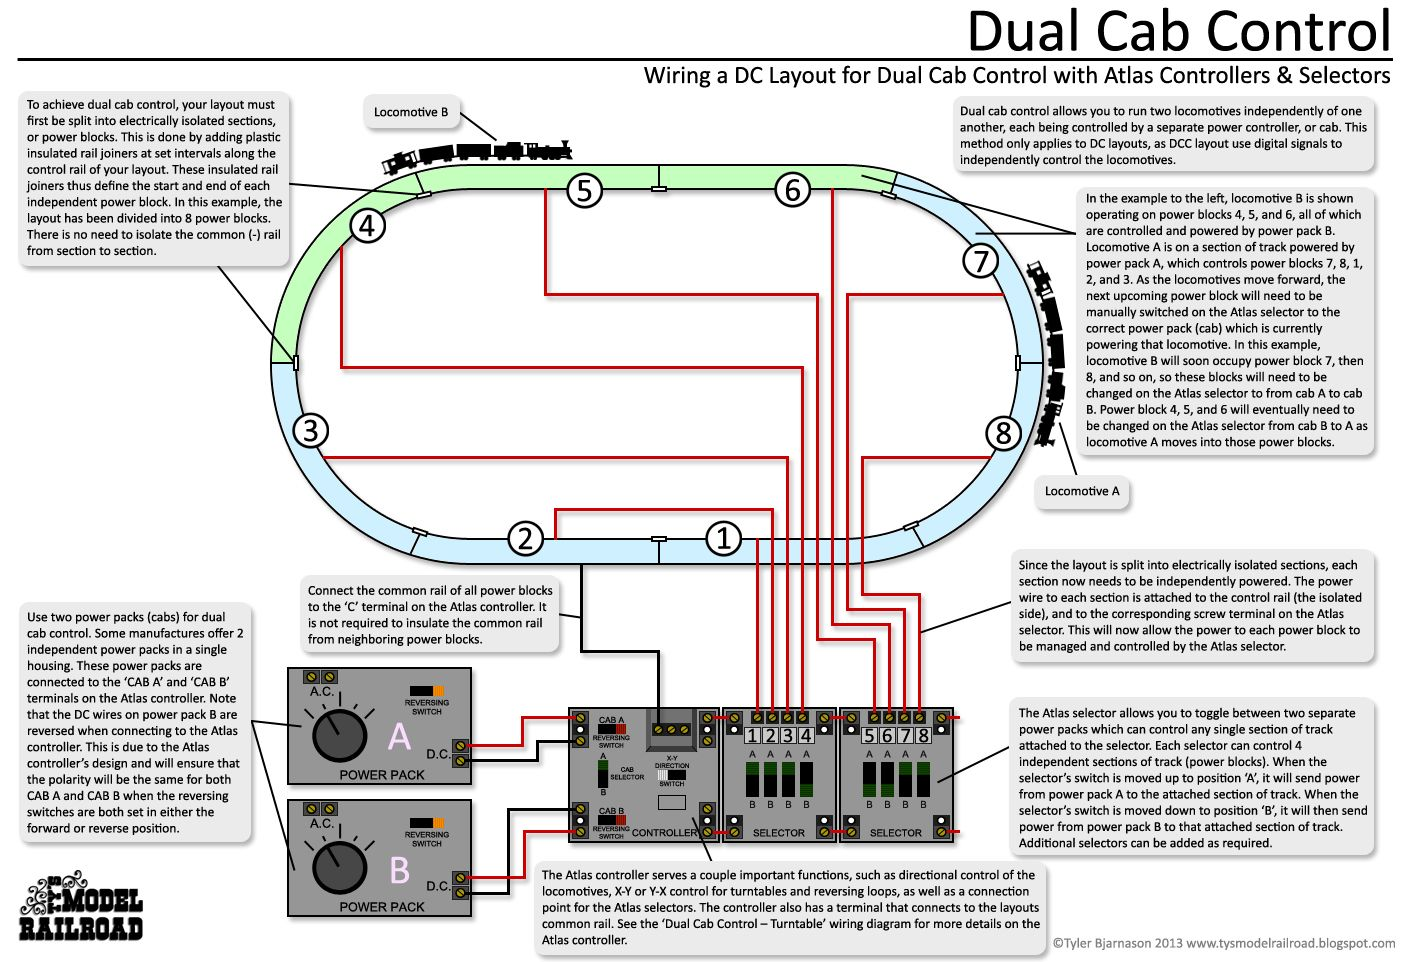 Train Tracks · How to wire a layout for dual cab control using an Atlas  controller and selectors.